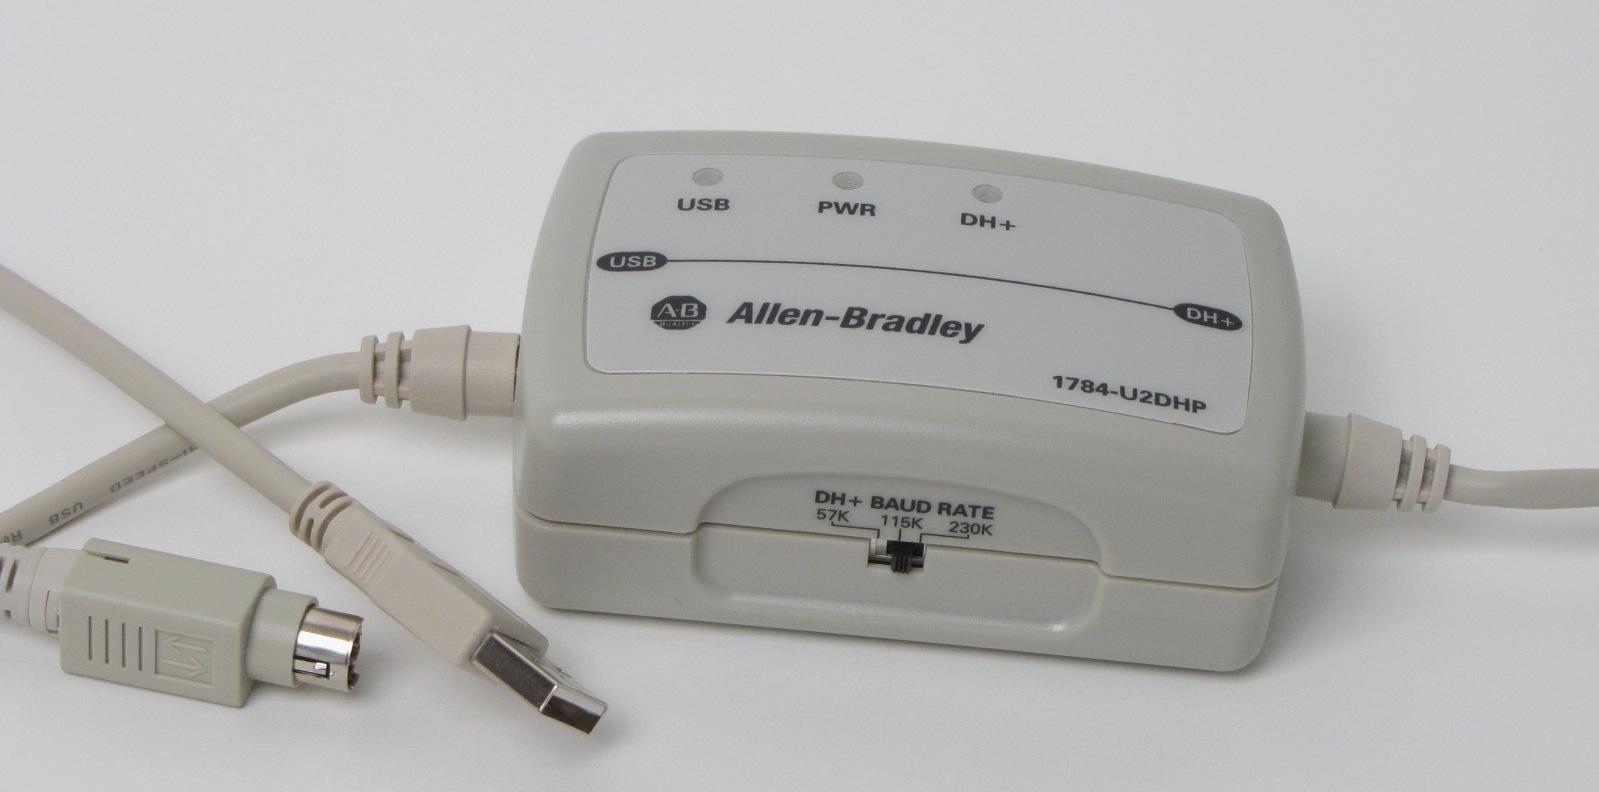 usb cables for use with allen-bradley (a-b) products